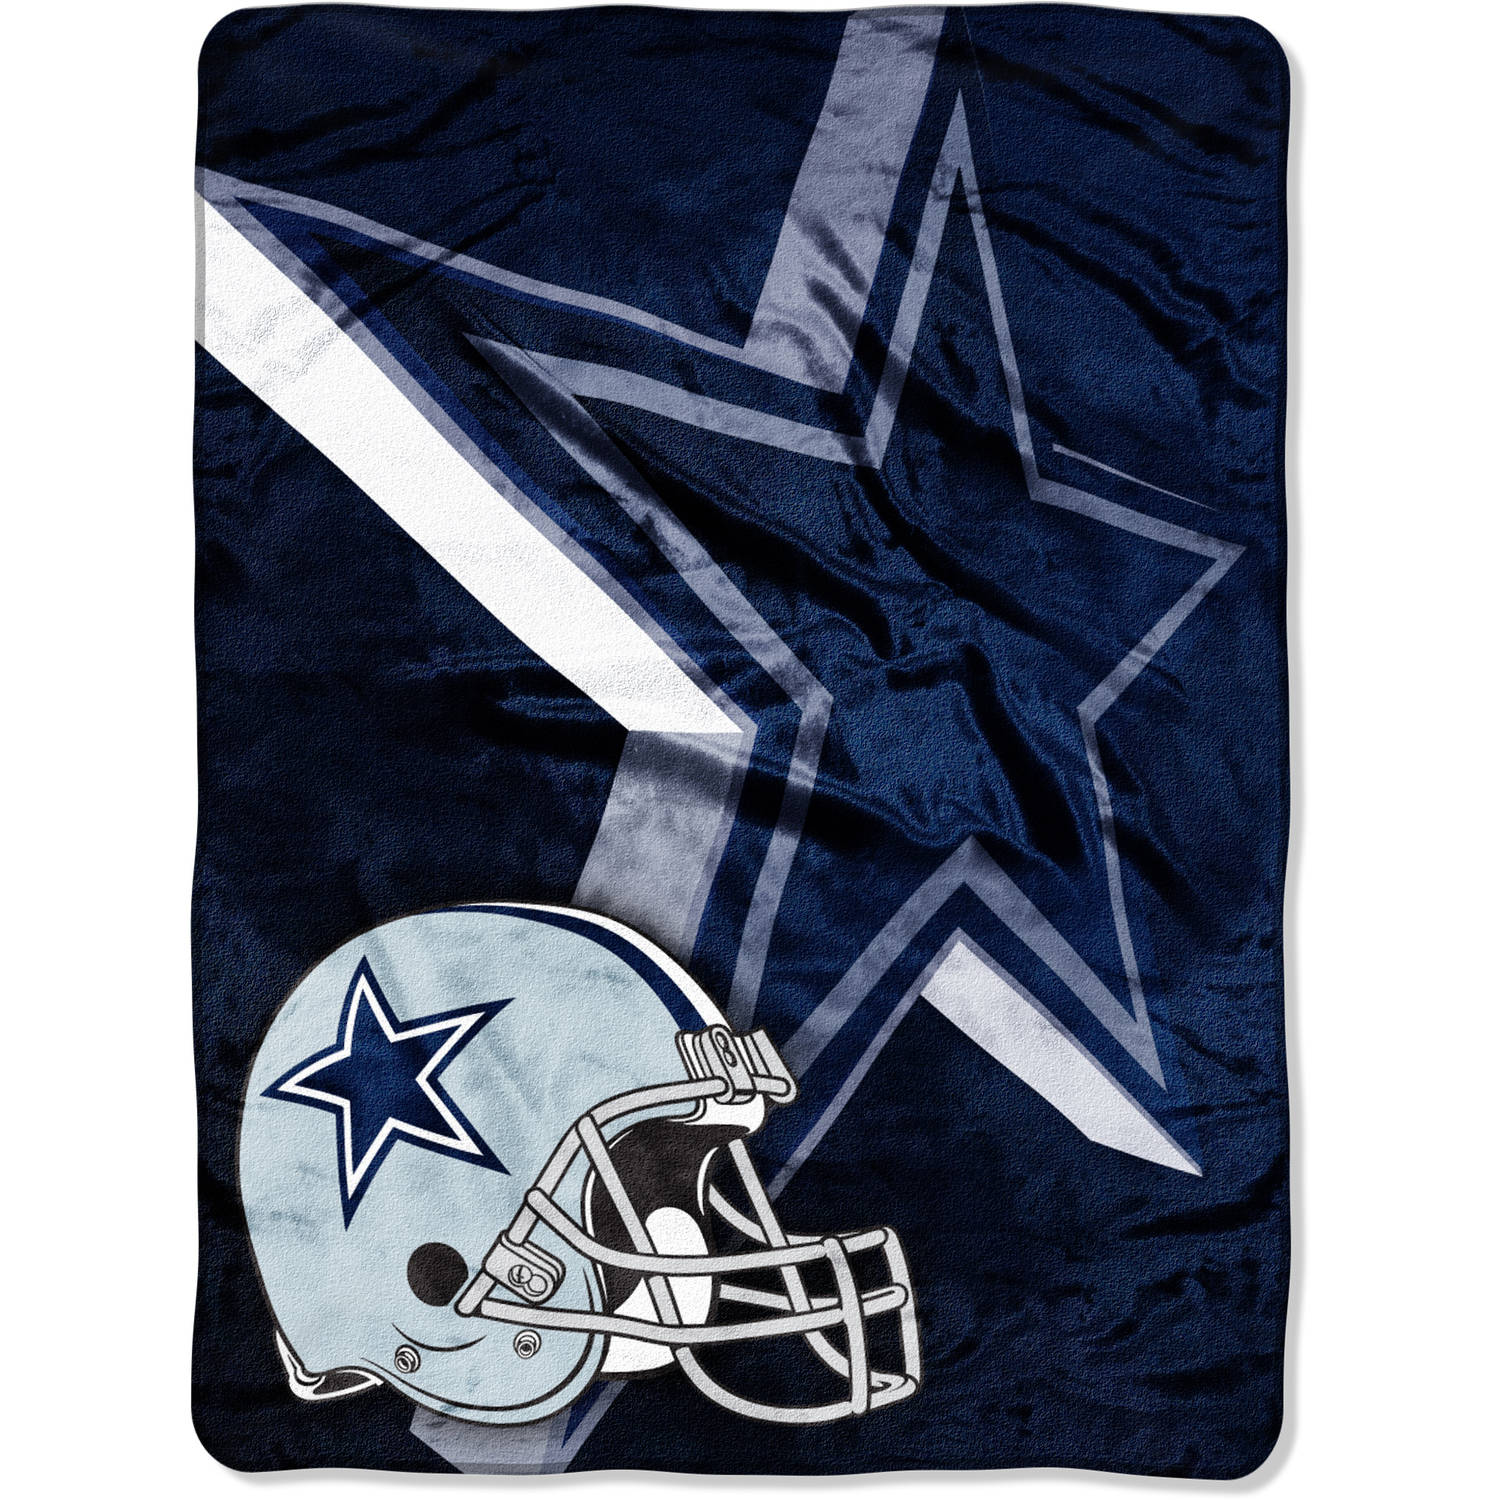 "NFL Dallas Cowboys 60"" x 80"" Oversized Micro Raschel Throw"